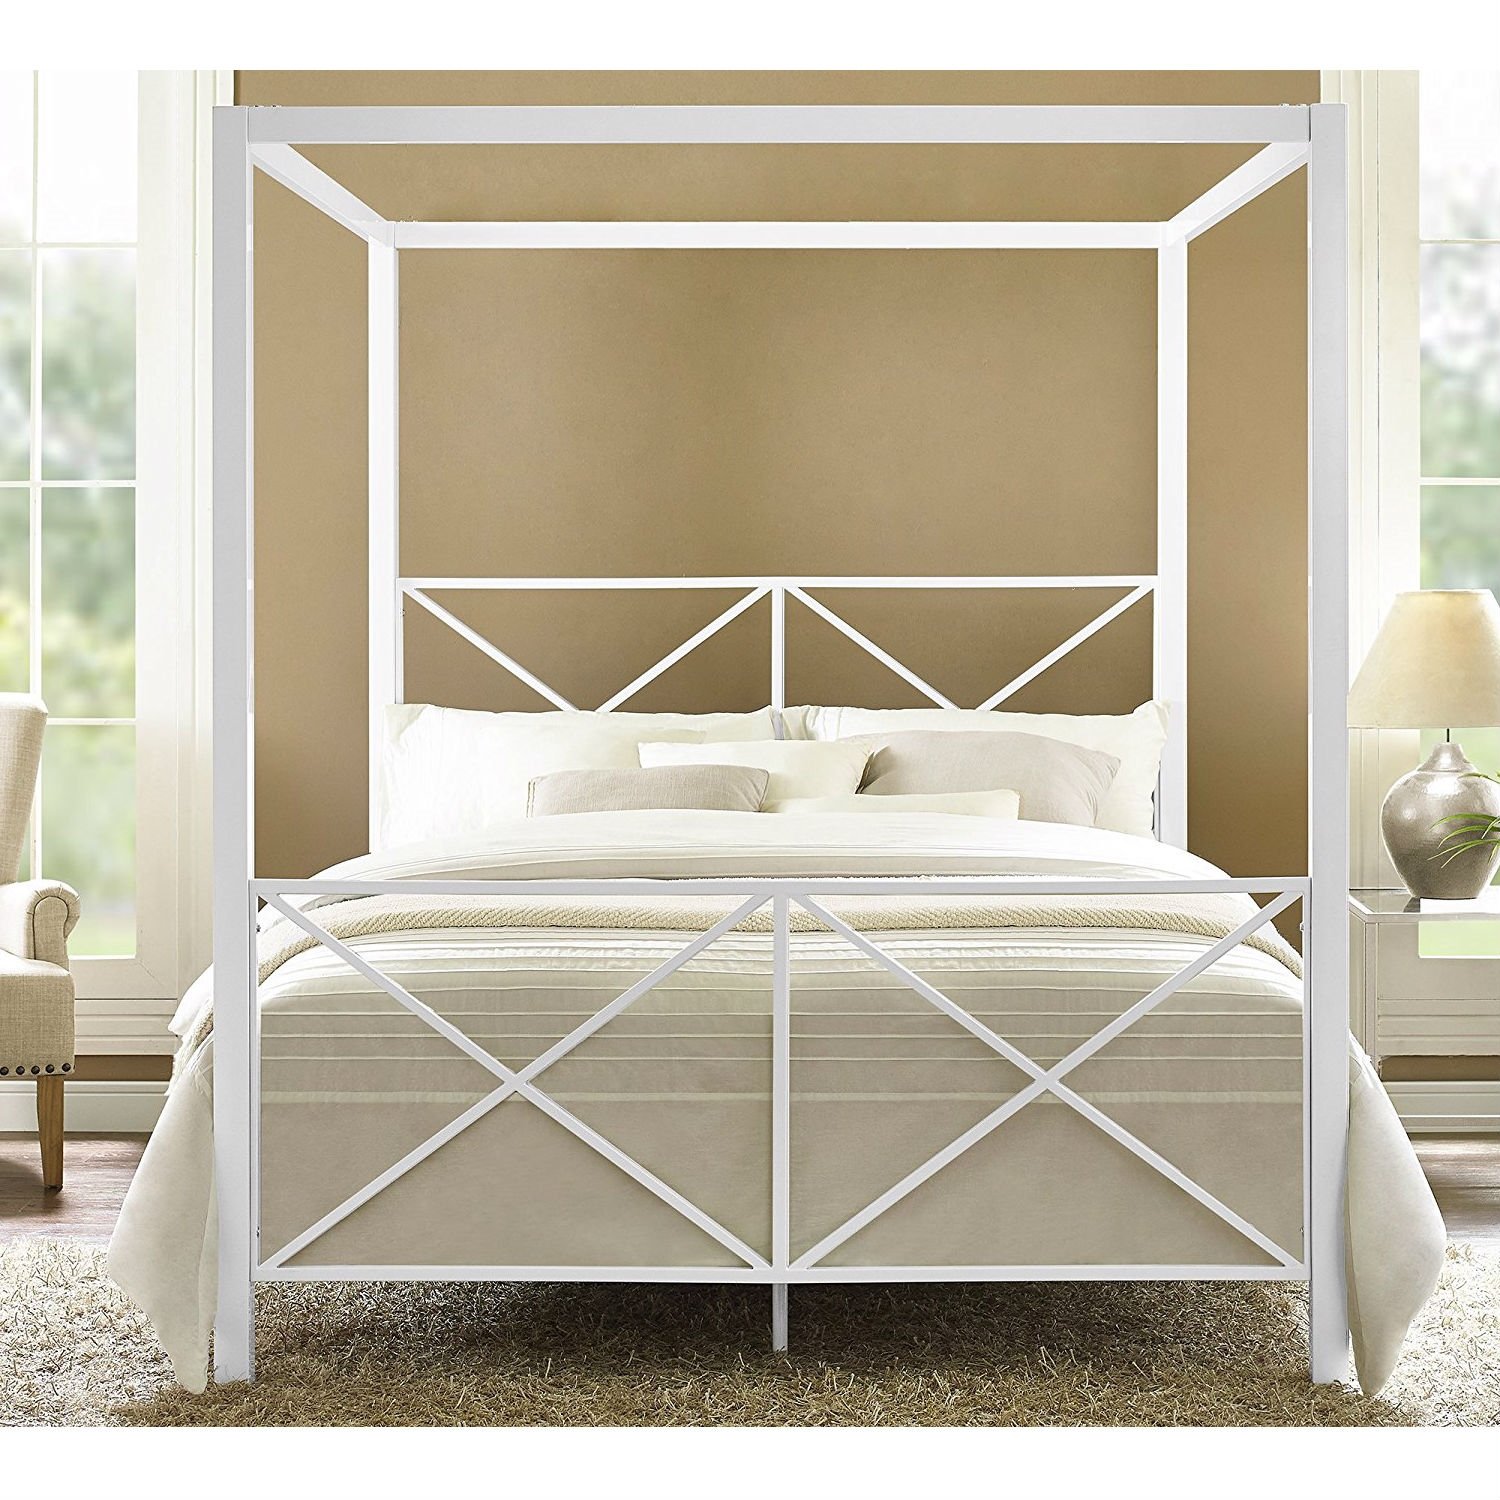 Picture of: Queen Size Sturdy Metal Canopy Bed Frame In White Fastfurnishings Com